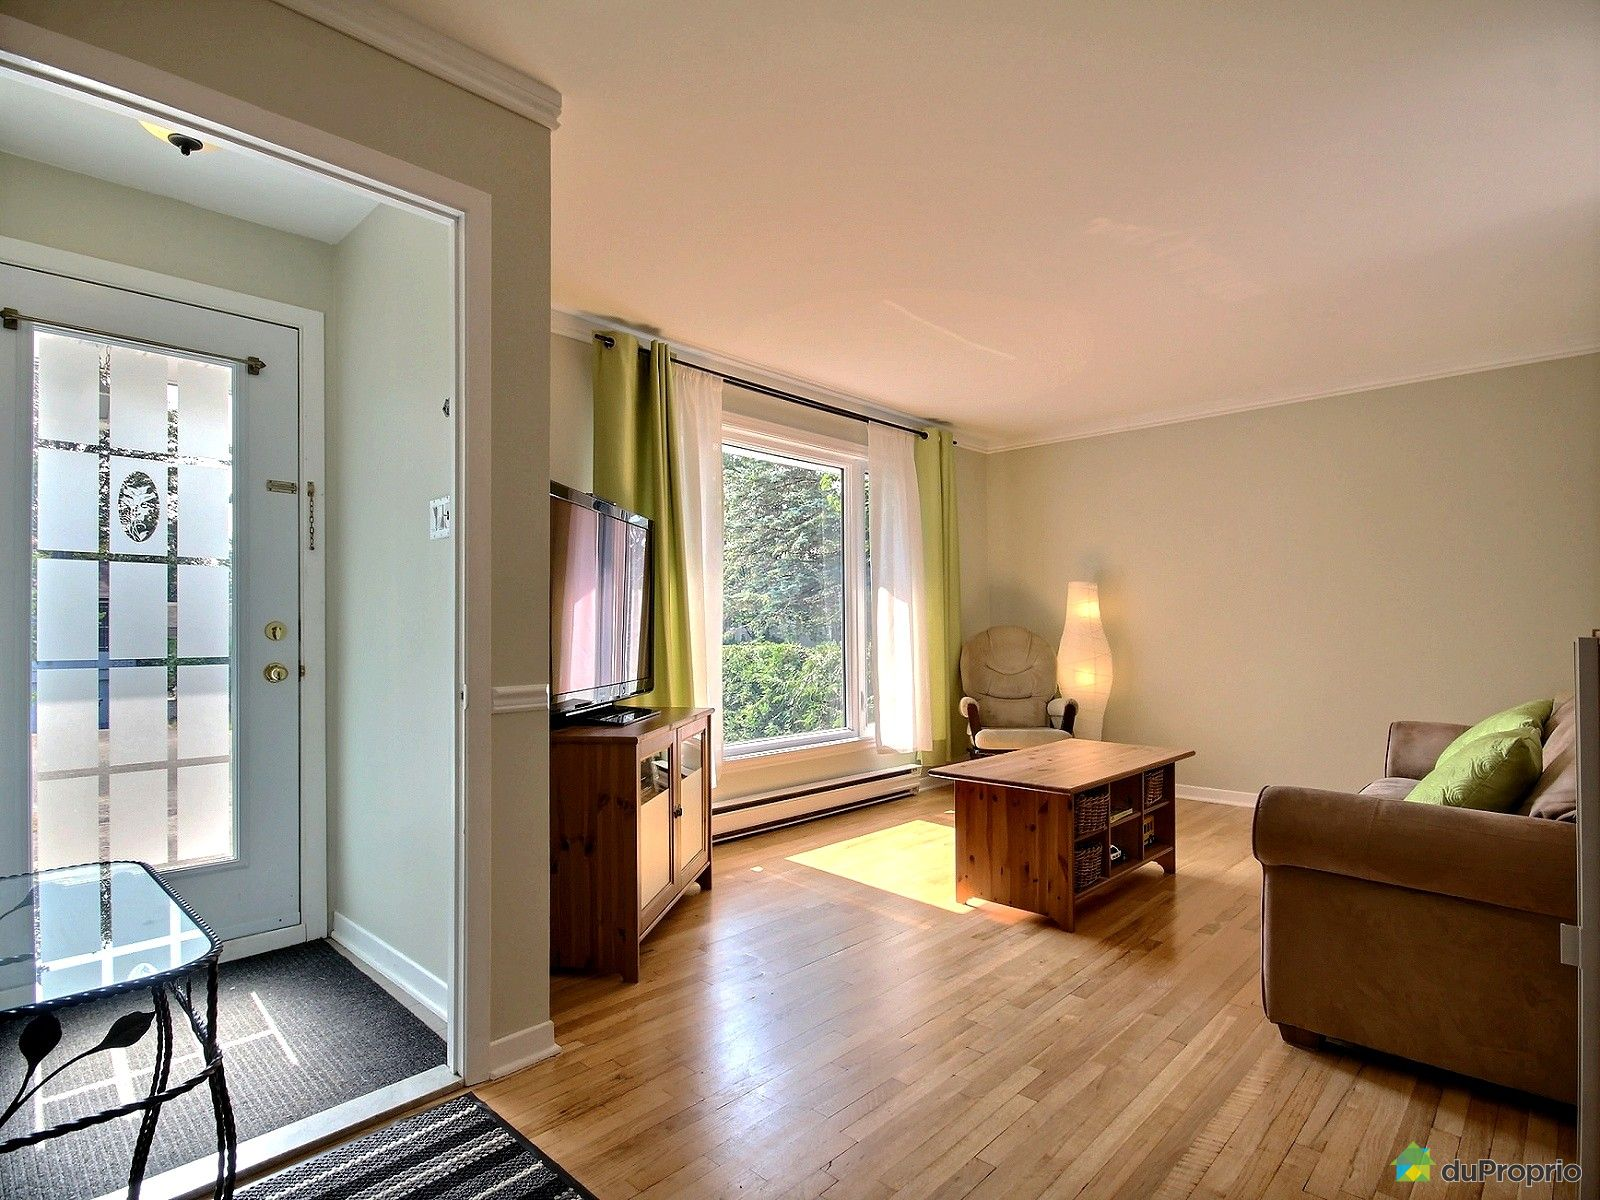 House sold in blainville duproprio 492296 for Living room 4x5